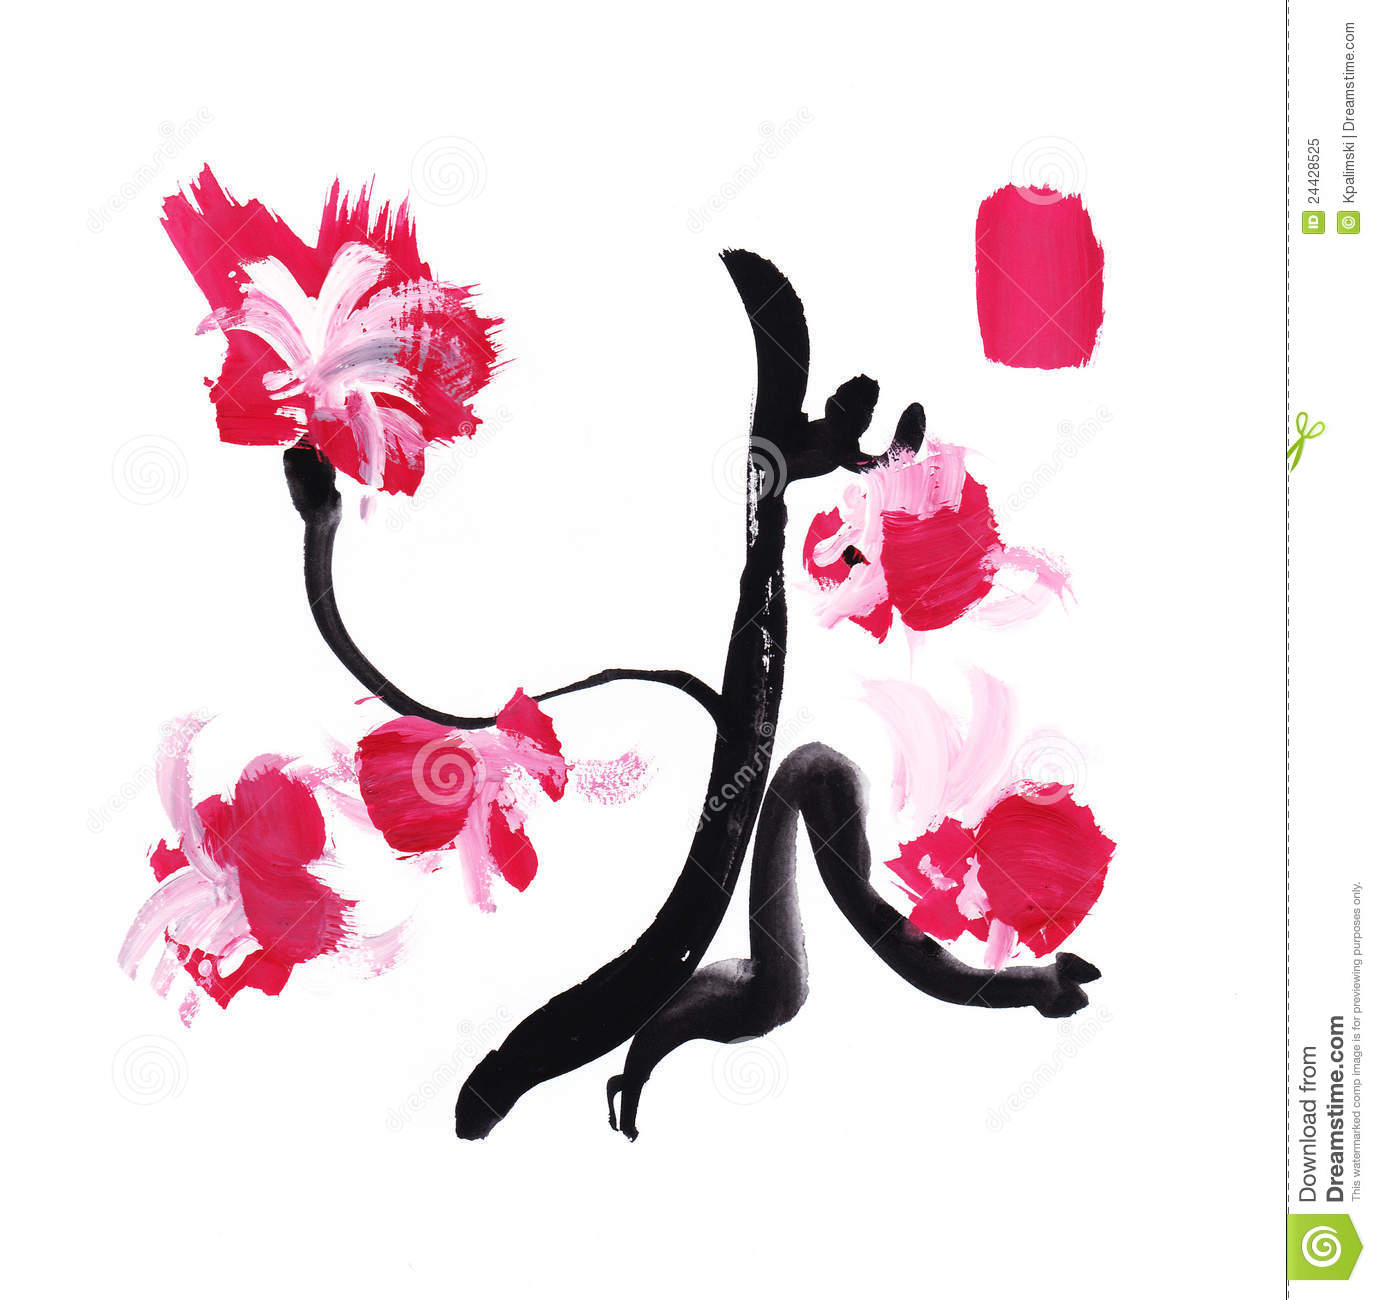 Paint stroke japan calligraphy flowers royalty free stock